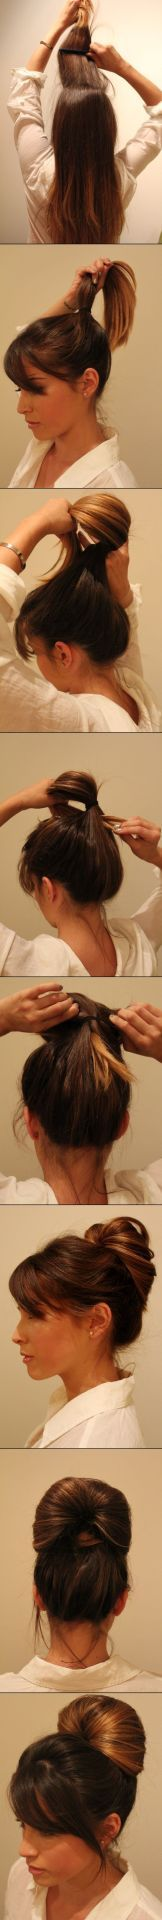 Hair & Beauty — Mind. Blown. So easy Hairstyle!